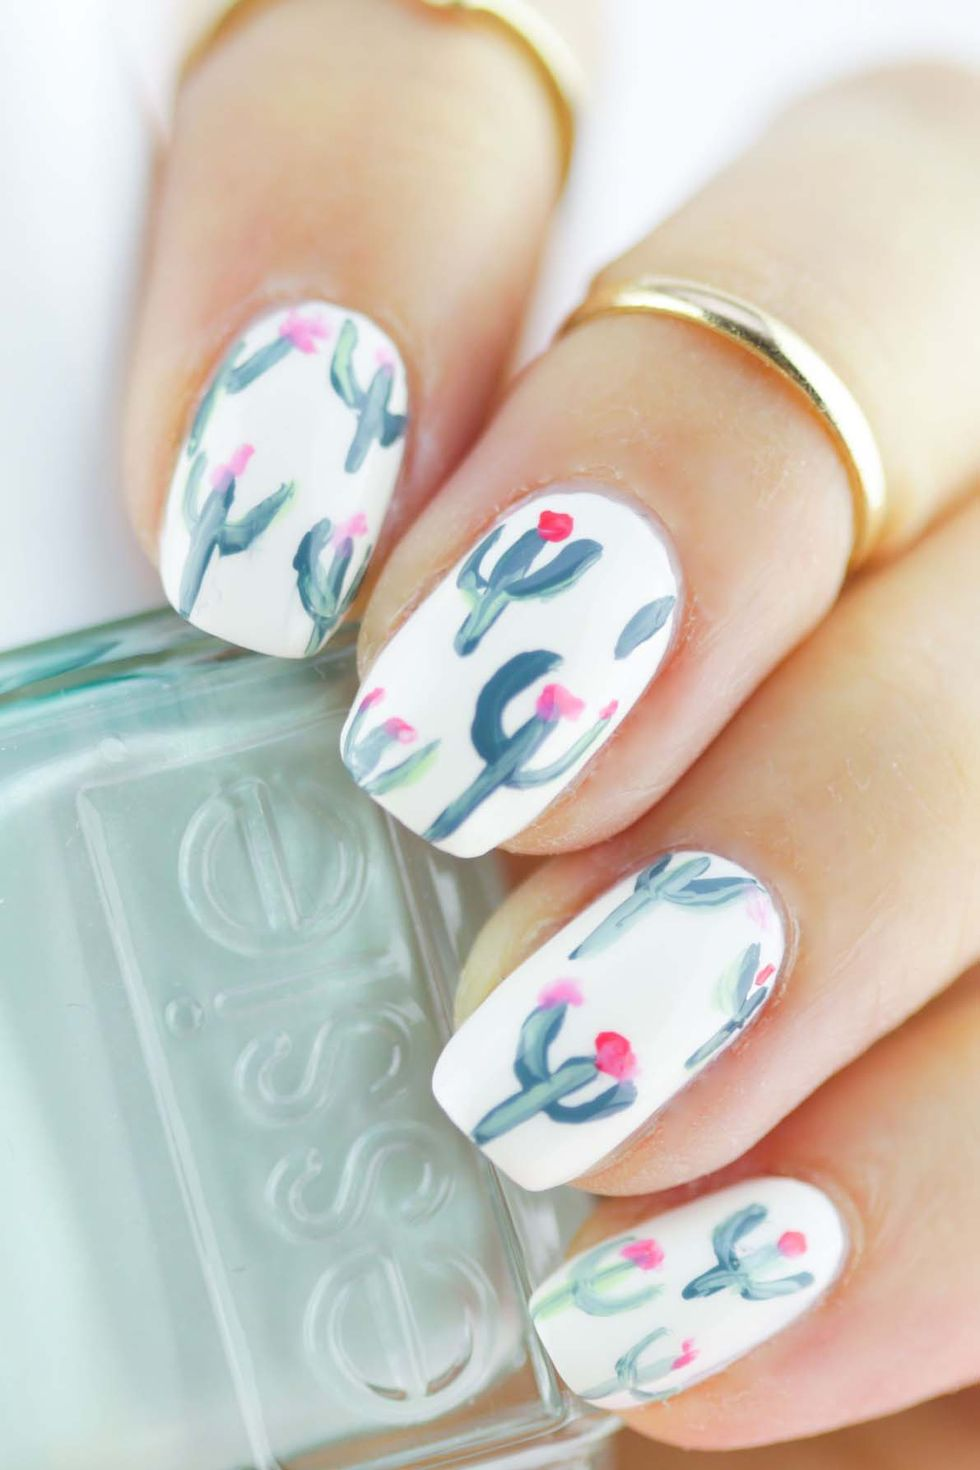 25 Summer Nail Art Ideas That Aren't Afraid to Bring on the Color